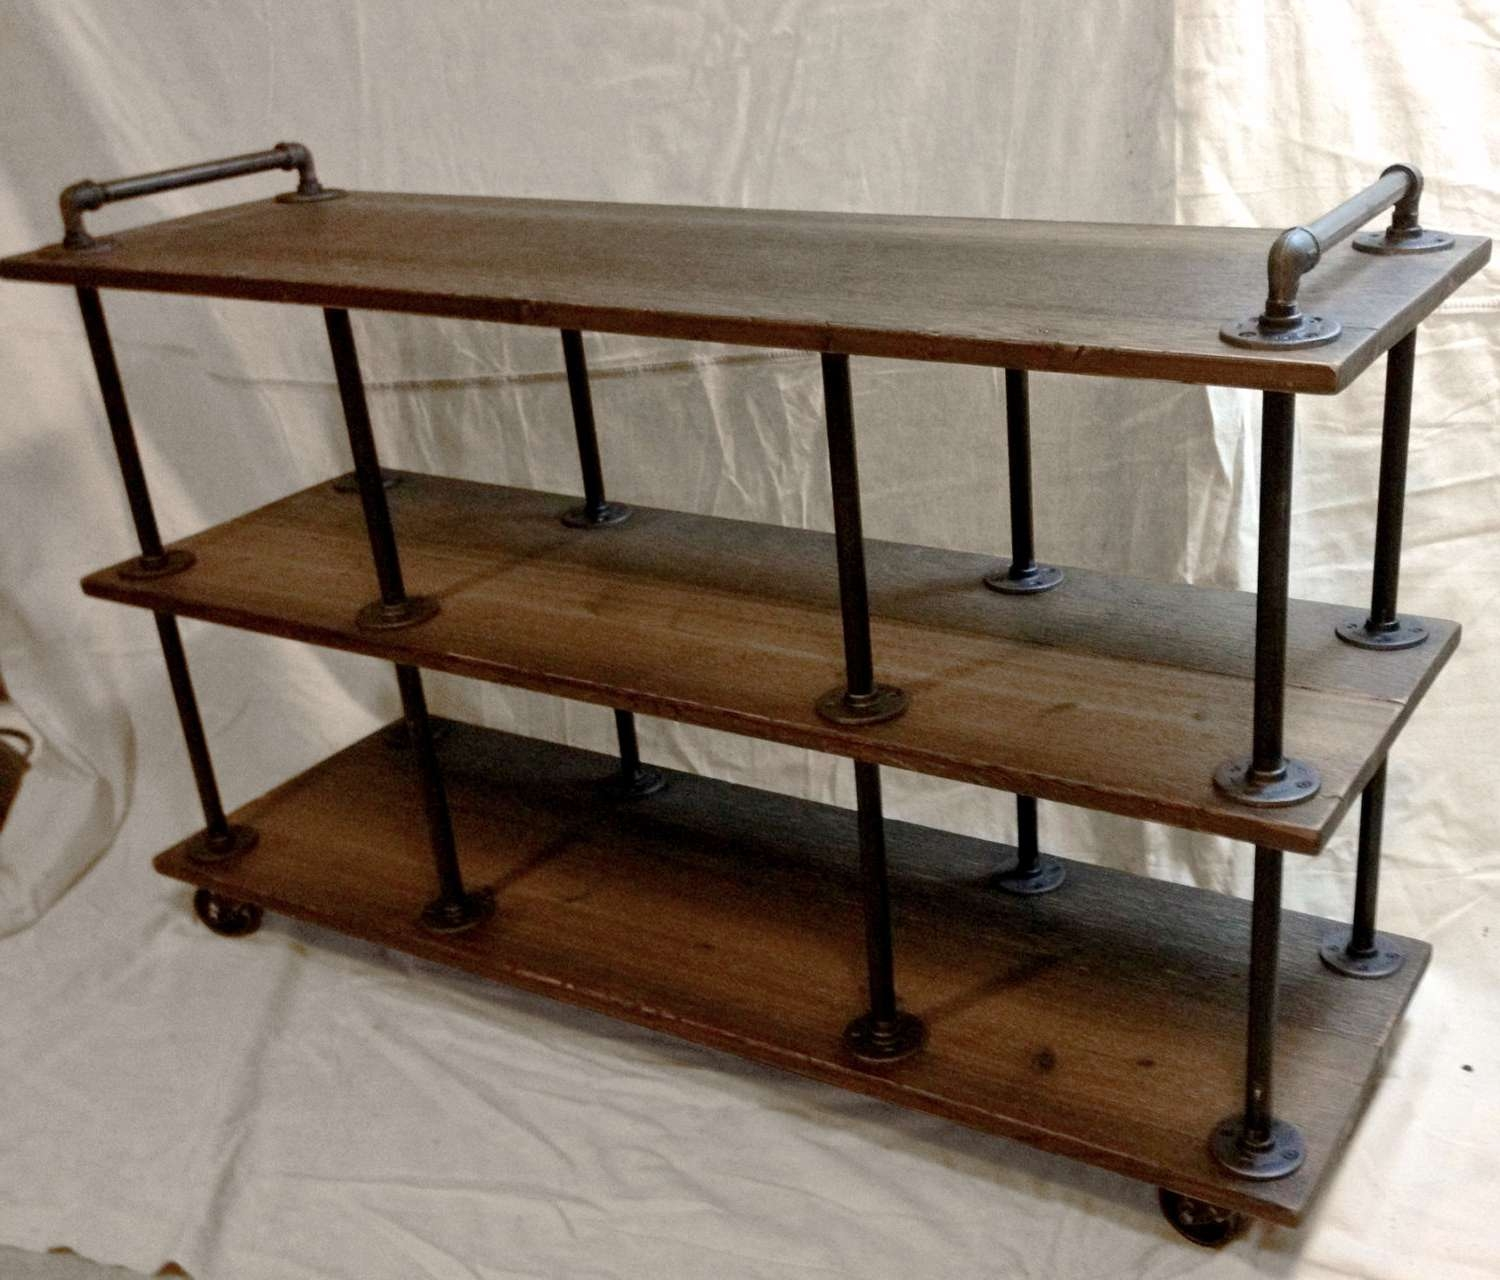 Tv Stands – Retro Works Studio With Regard To Wood And Metal Tv Stands (View 13 of 15)